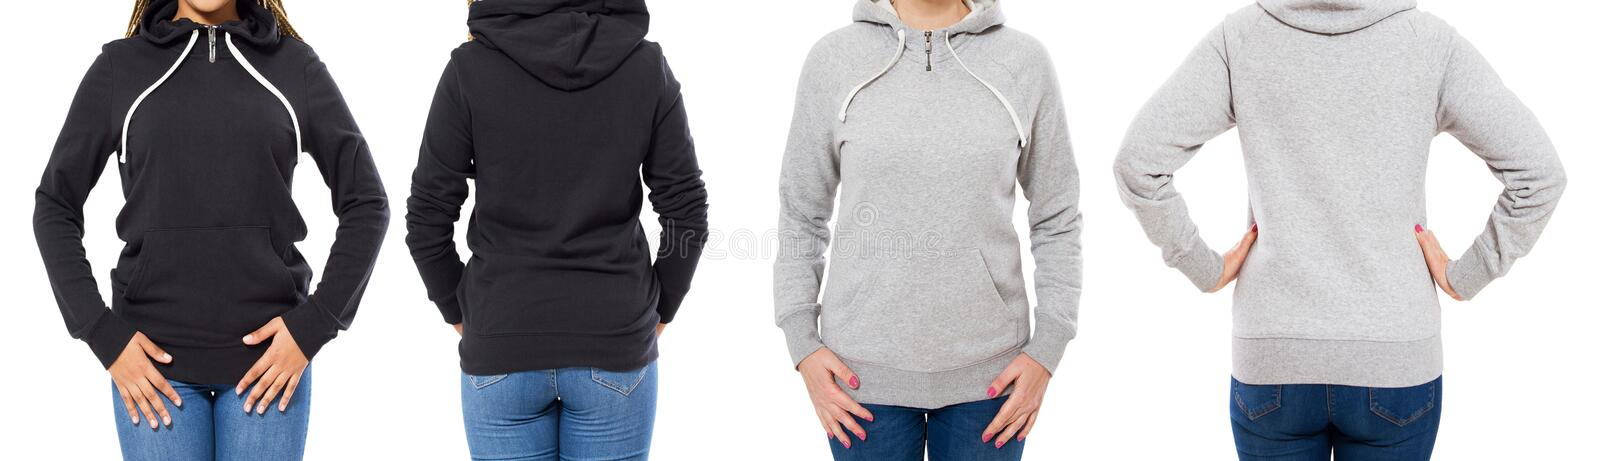 Front and back view - female girl woman in grey black hoodie isolated on white background royalty free stock photo